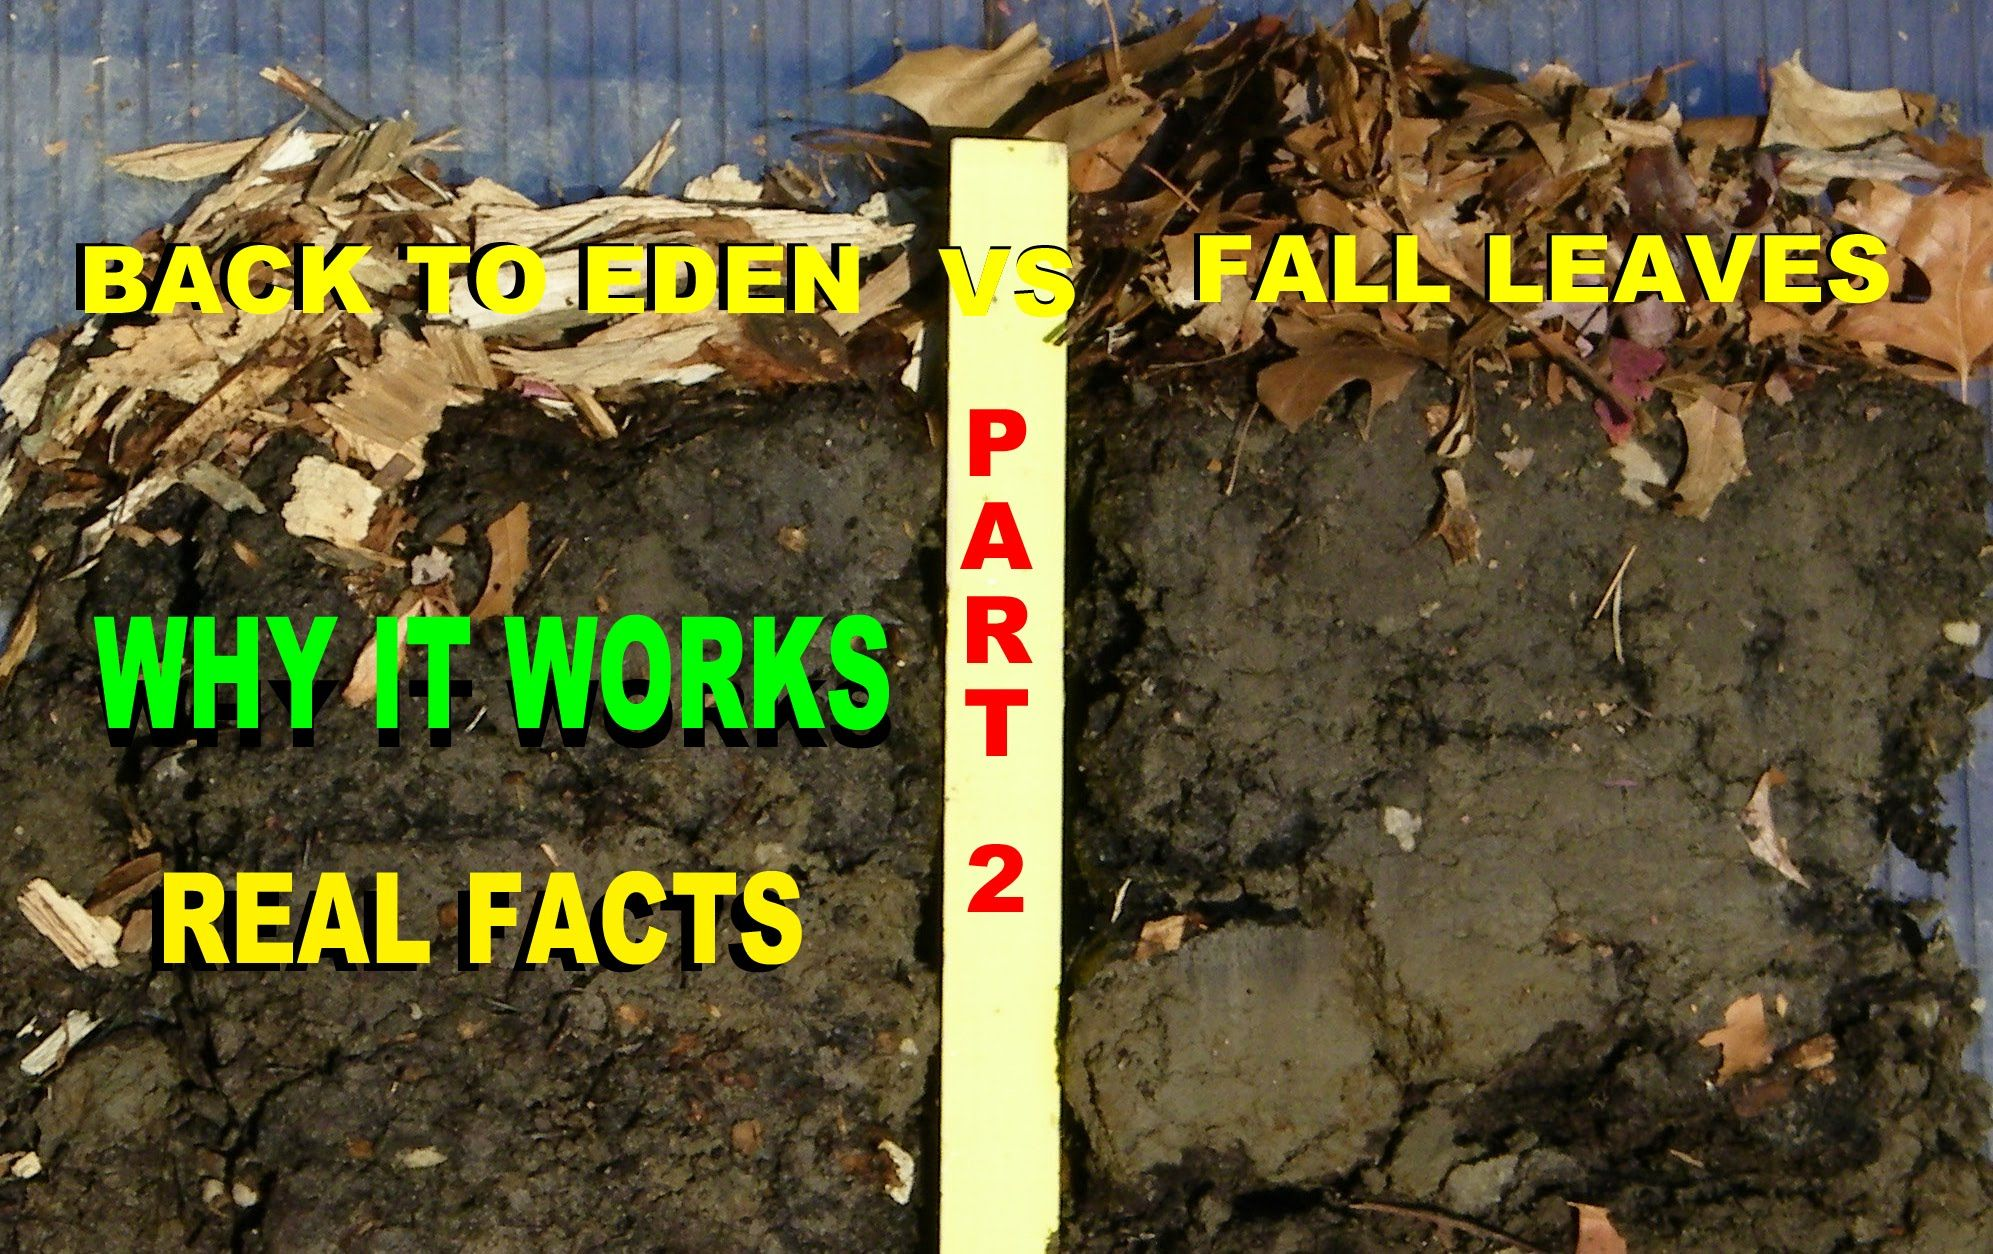 Back To Eden Organic Gardening Method With Wood Chips VS Leaves Composti.